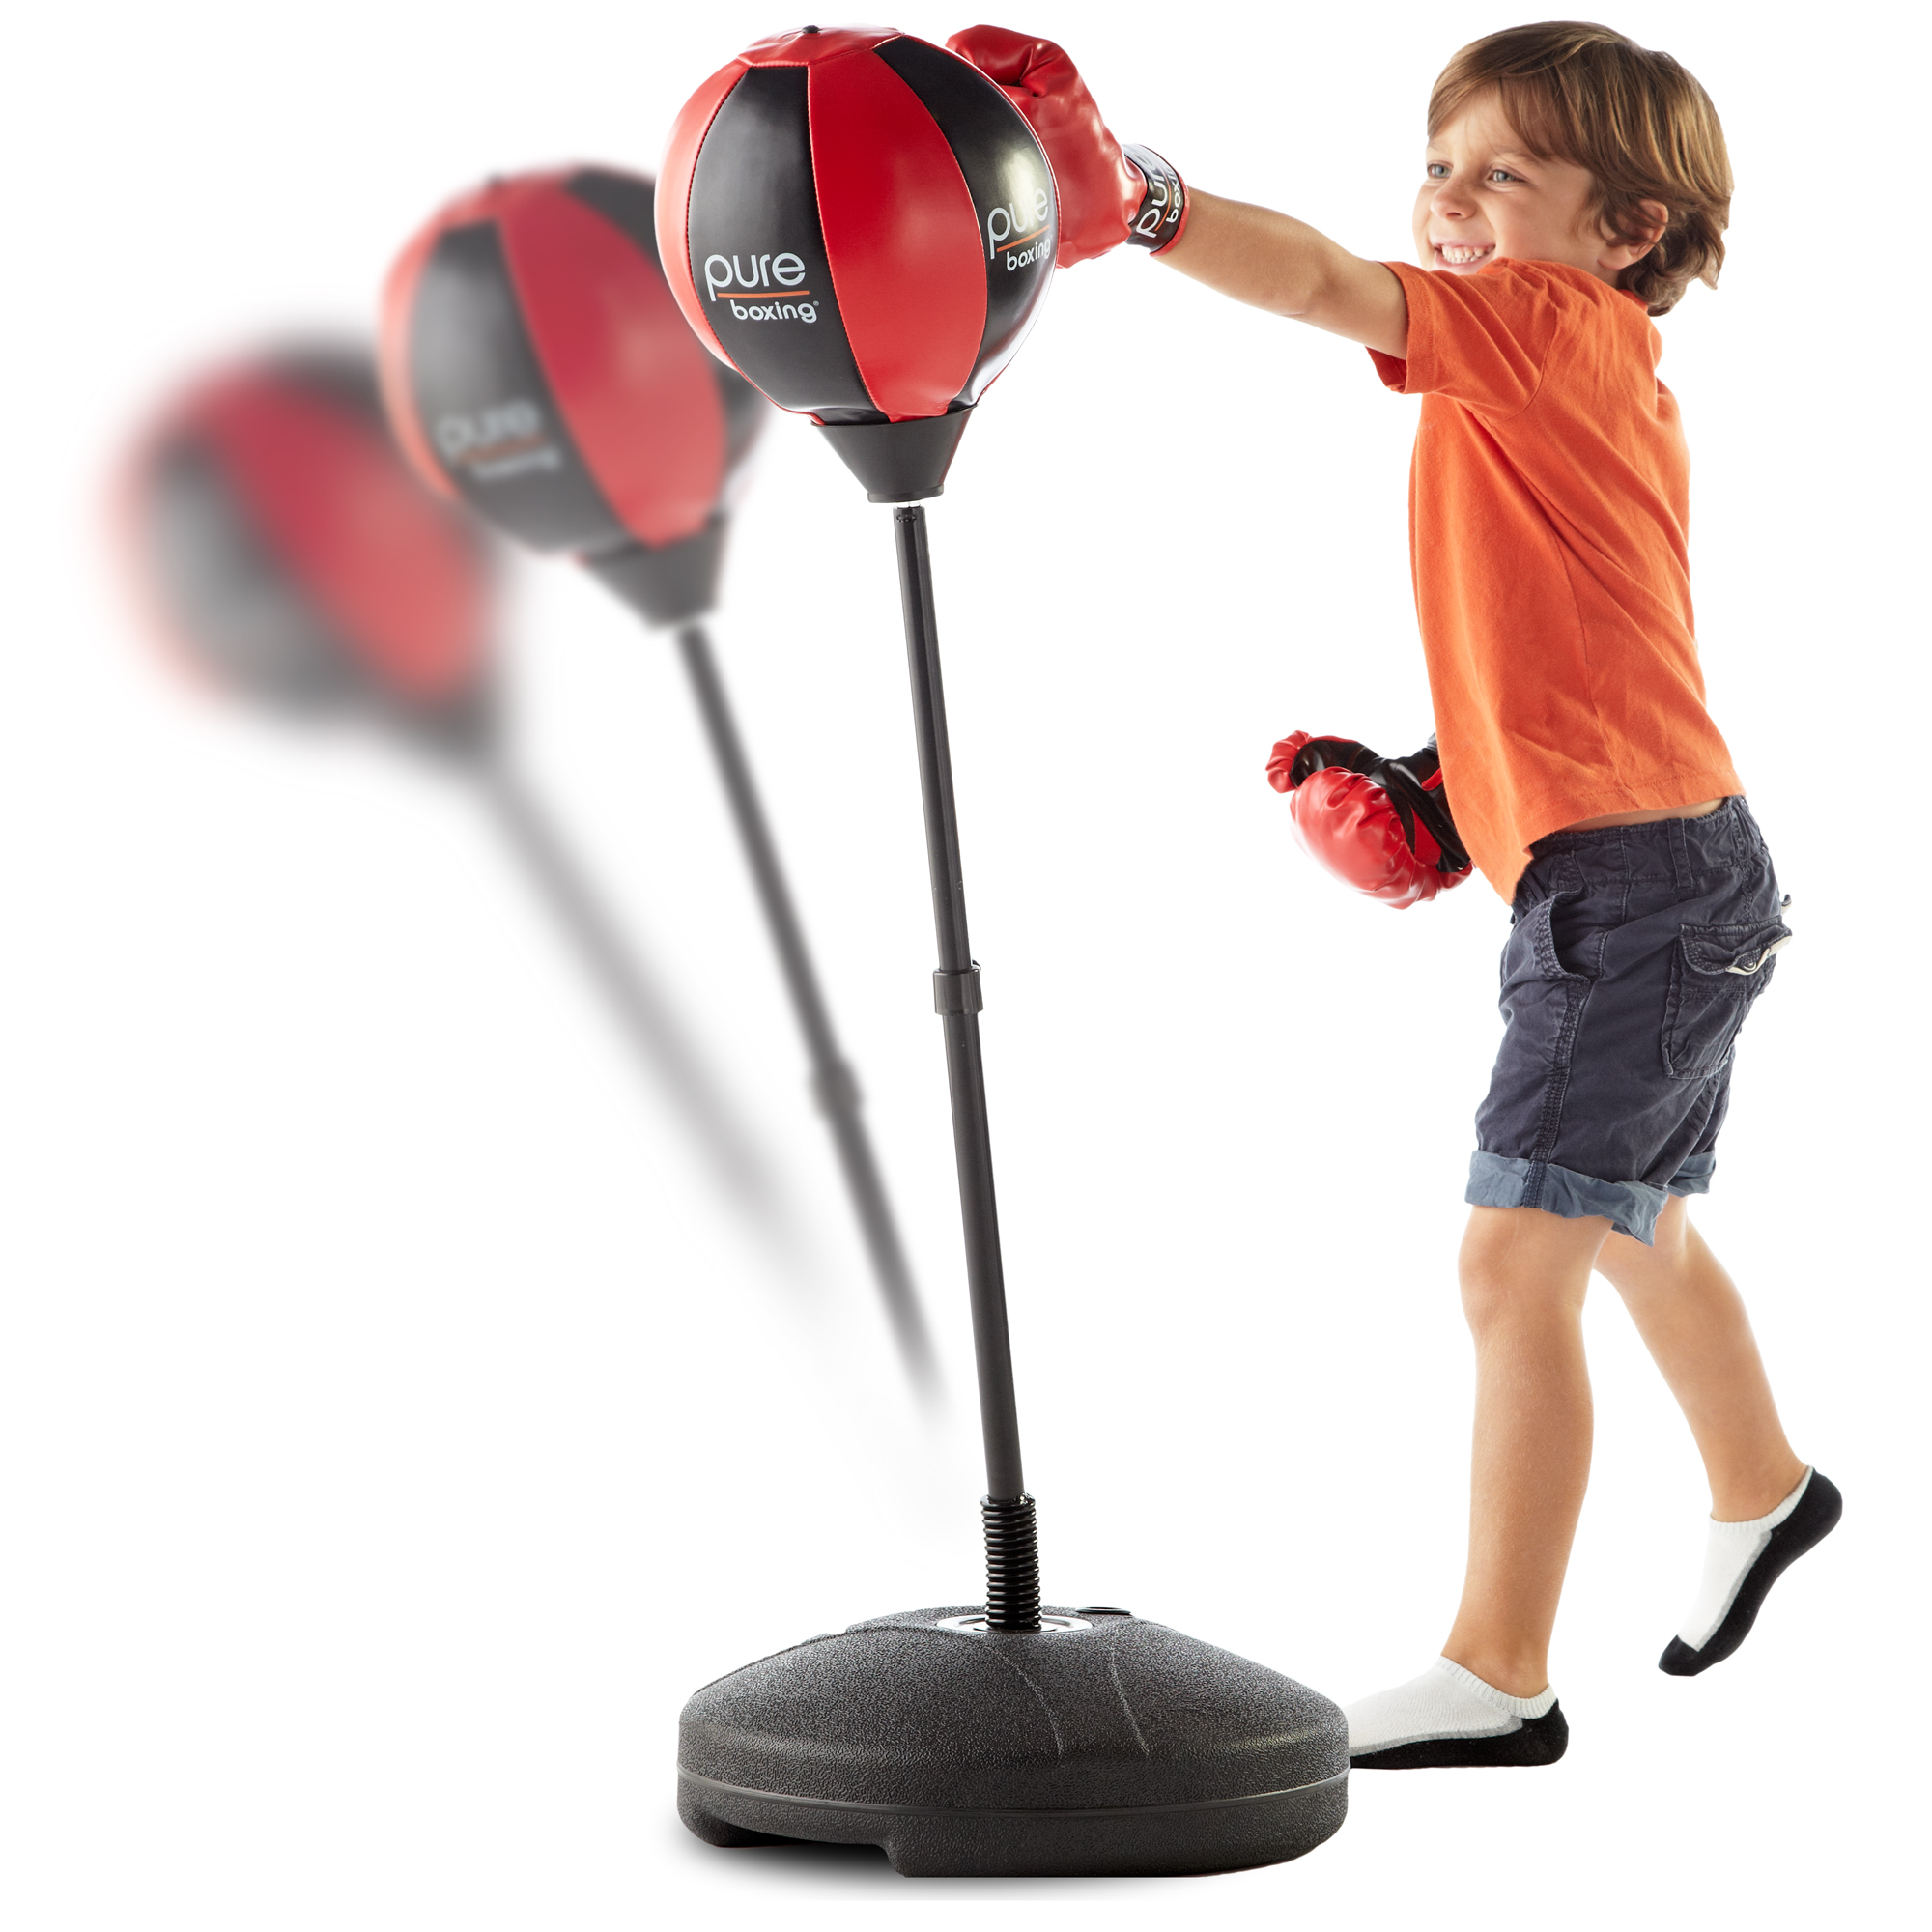 Pure Boxing Punch & Play Punching Bag for Kids - Red